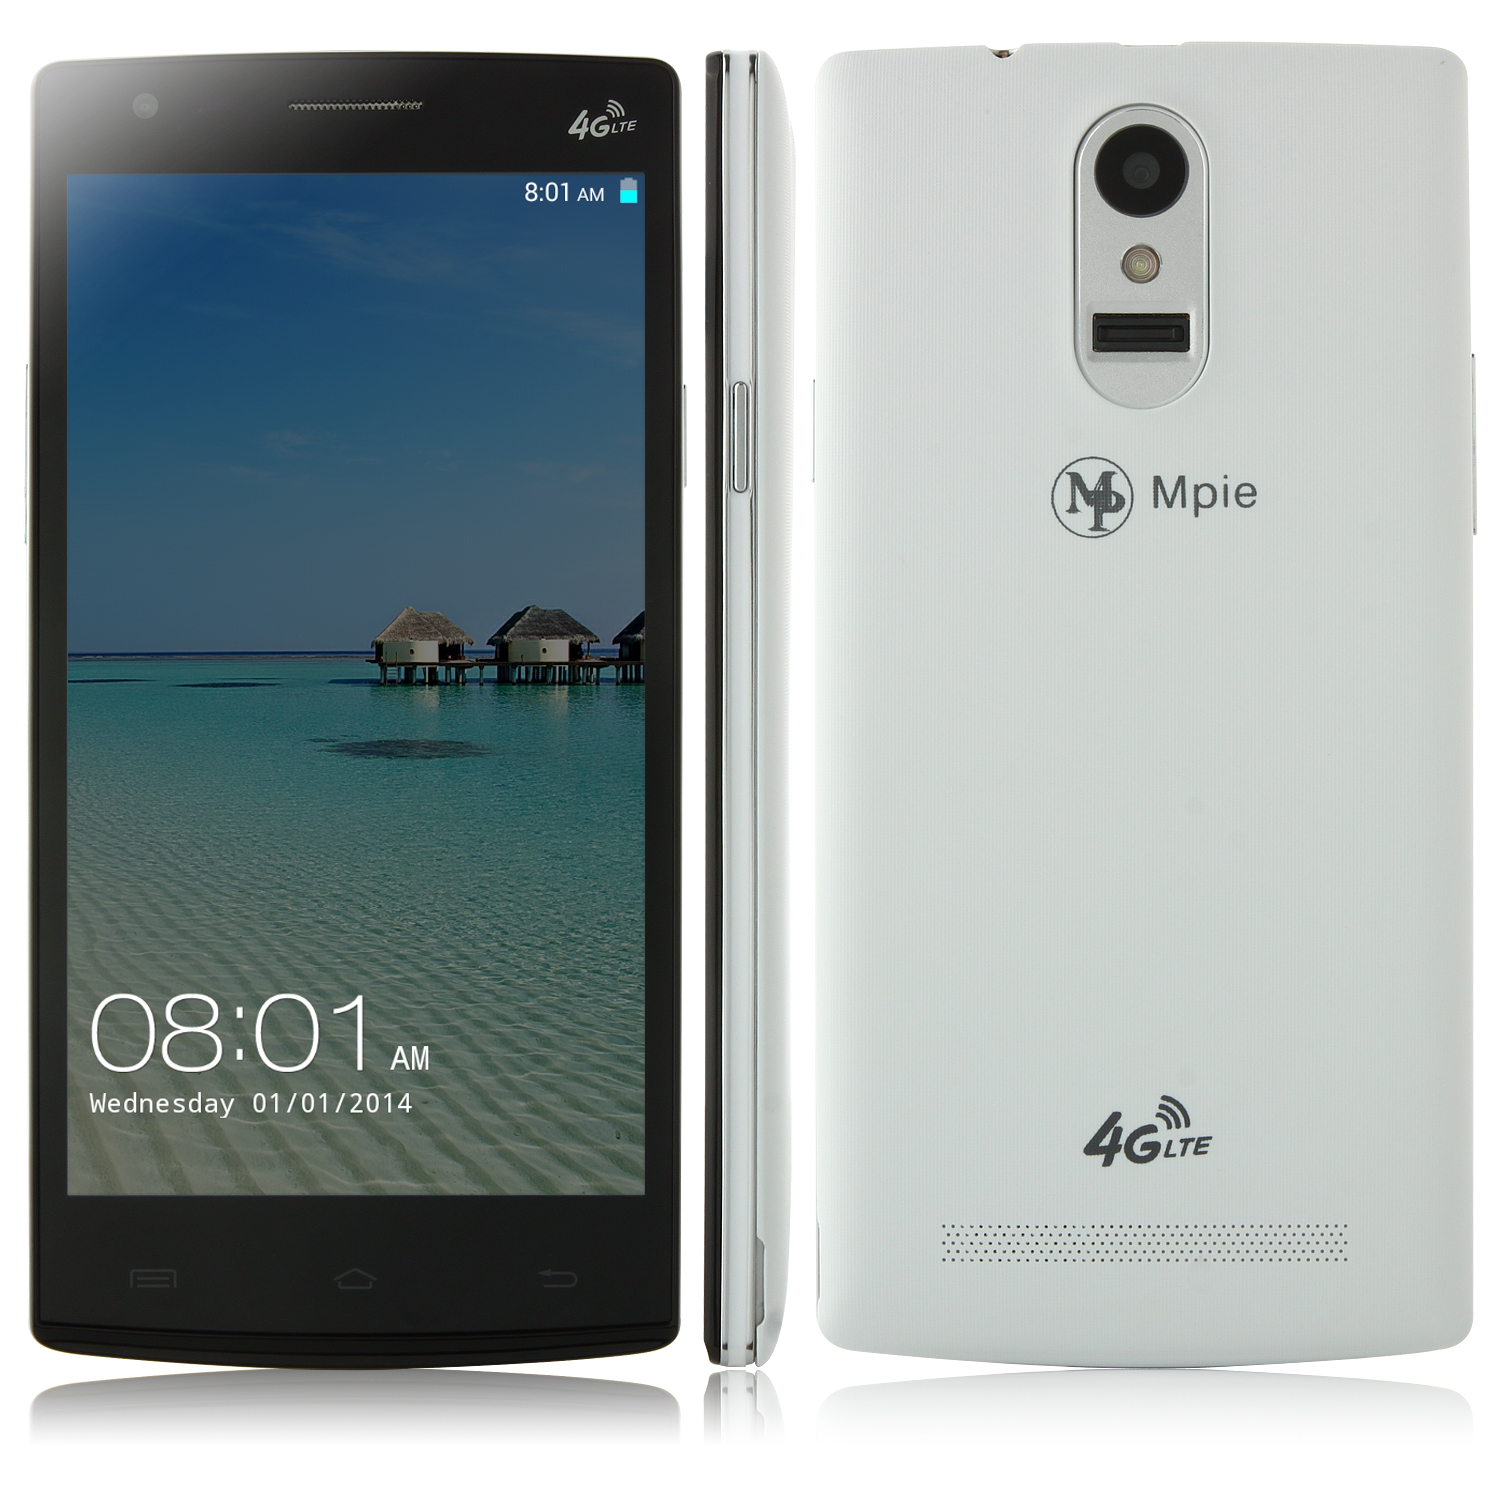 Mpie G7 Smartphone 4G LTE Android 4.4 MTK6582 Quad Core 2GB 8GB 5.0 Inch OTG NFC White